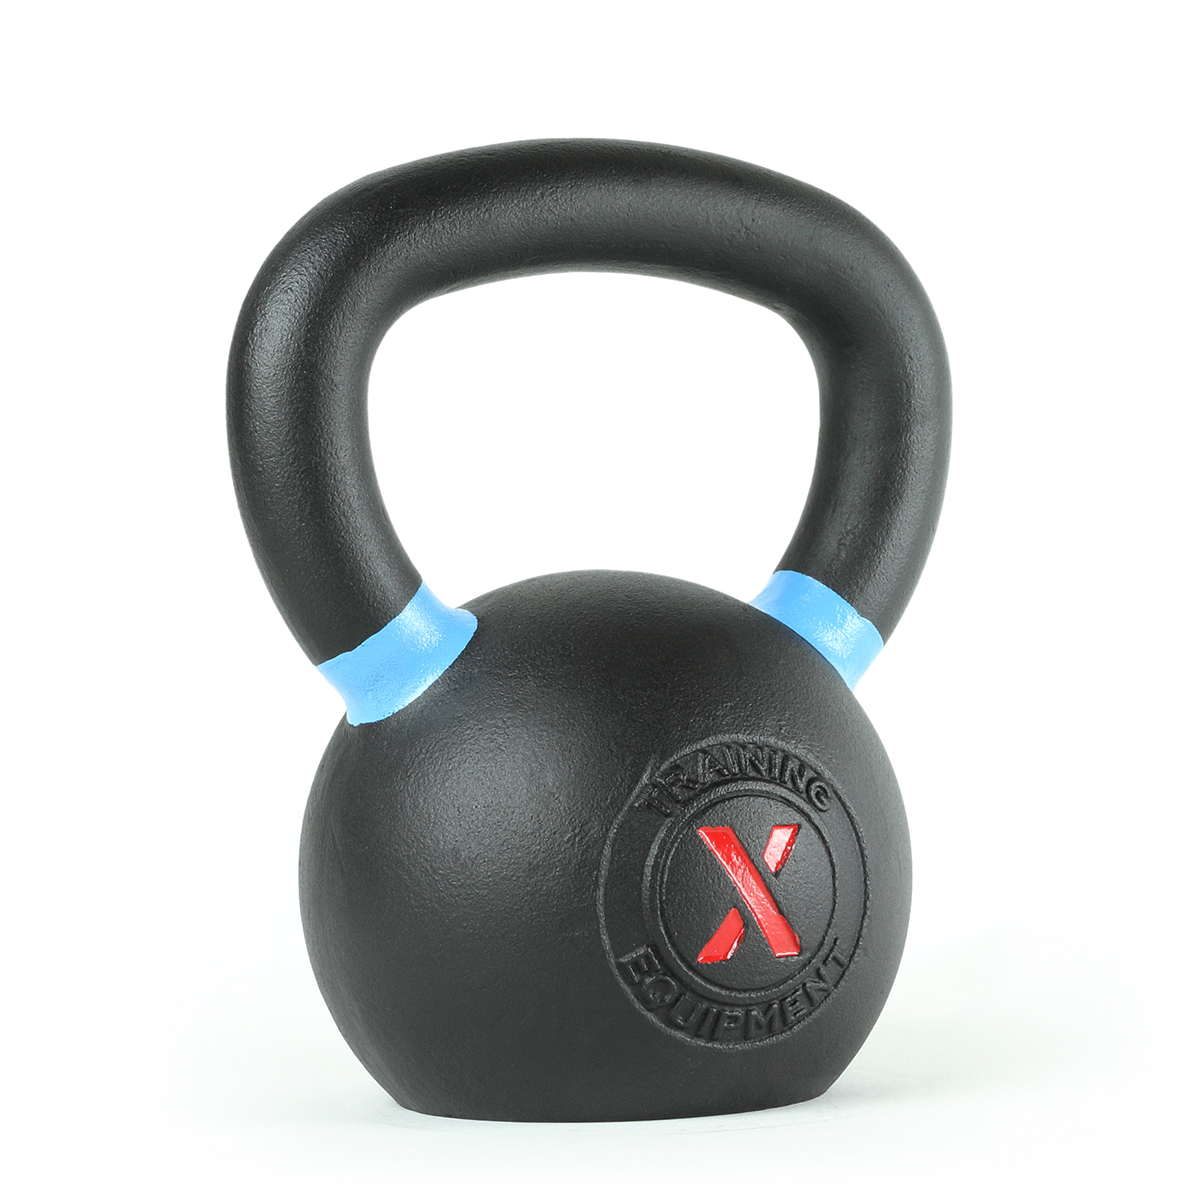 Premium Kettlebell 26lb / 12kg - Out of Stock